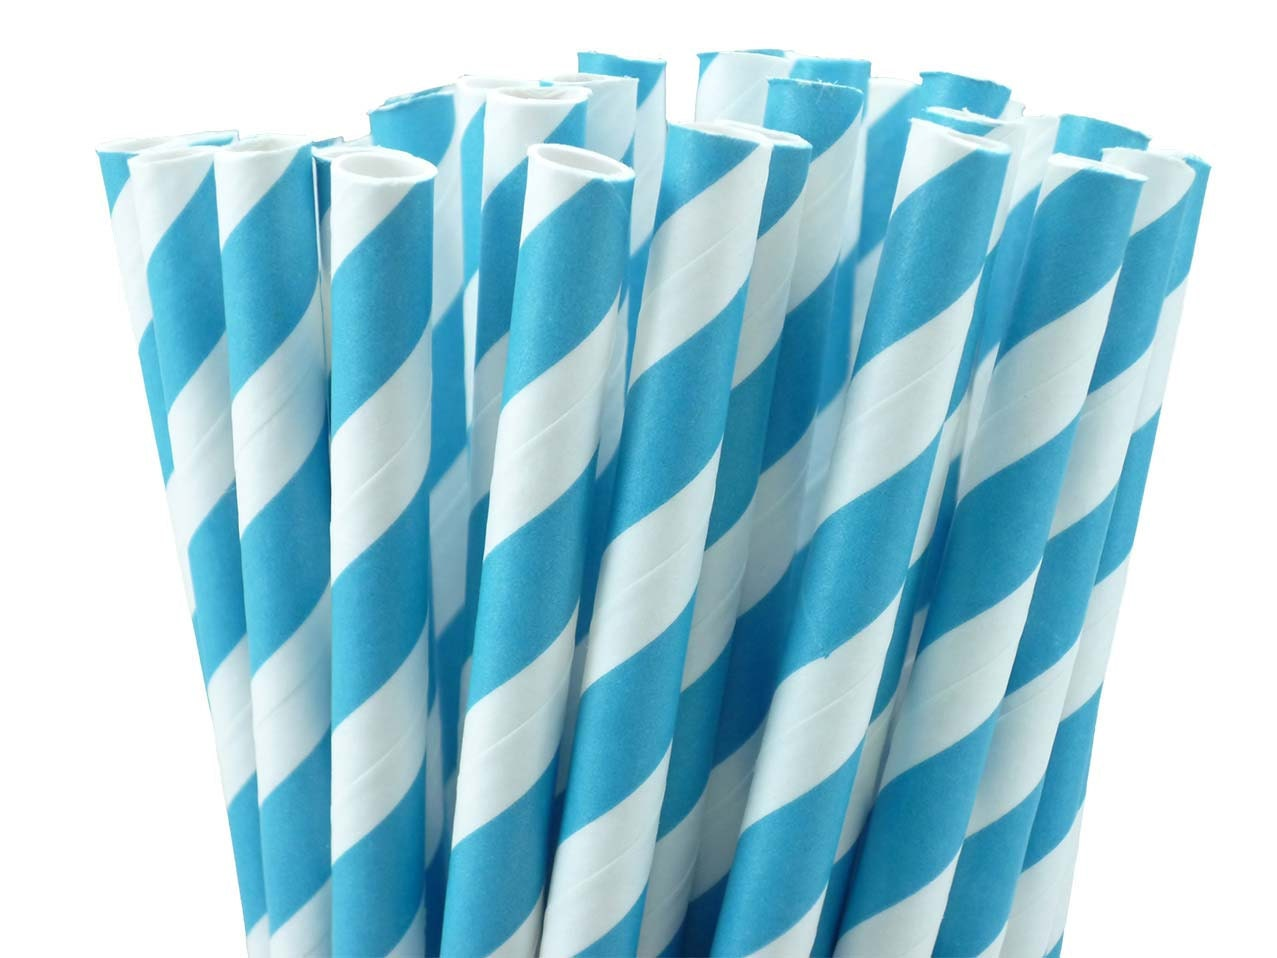 Turquoise Teal Blue Stripe Straws w/DIY Confetti Party Flags - BonFortune